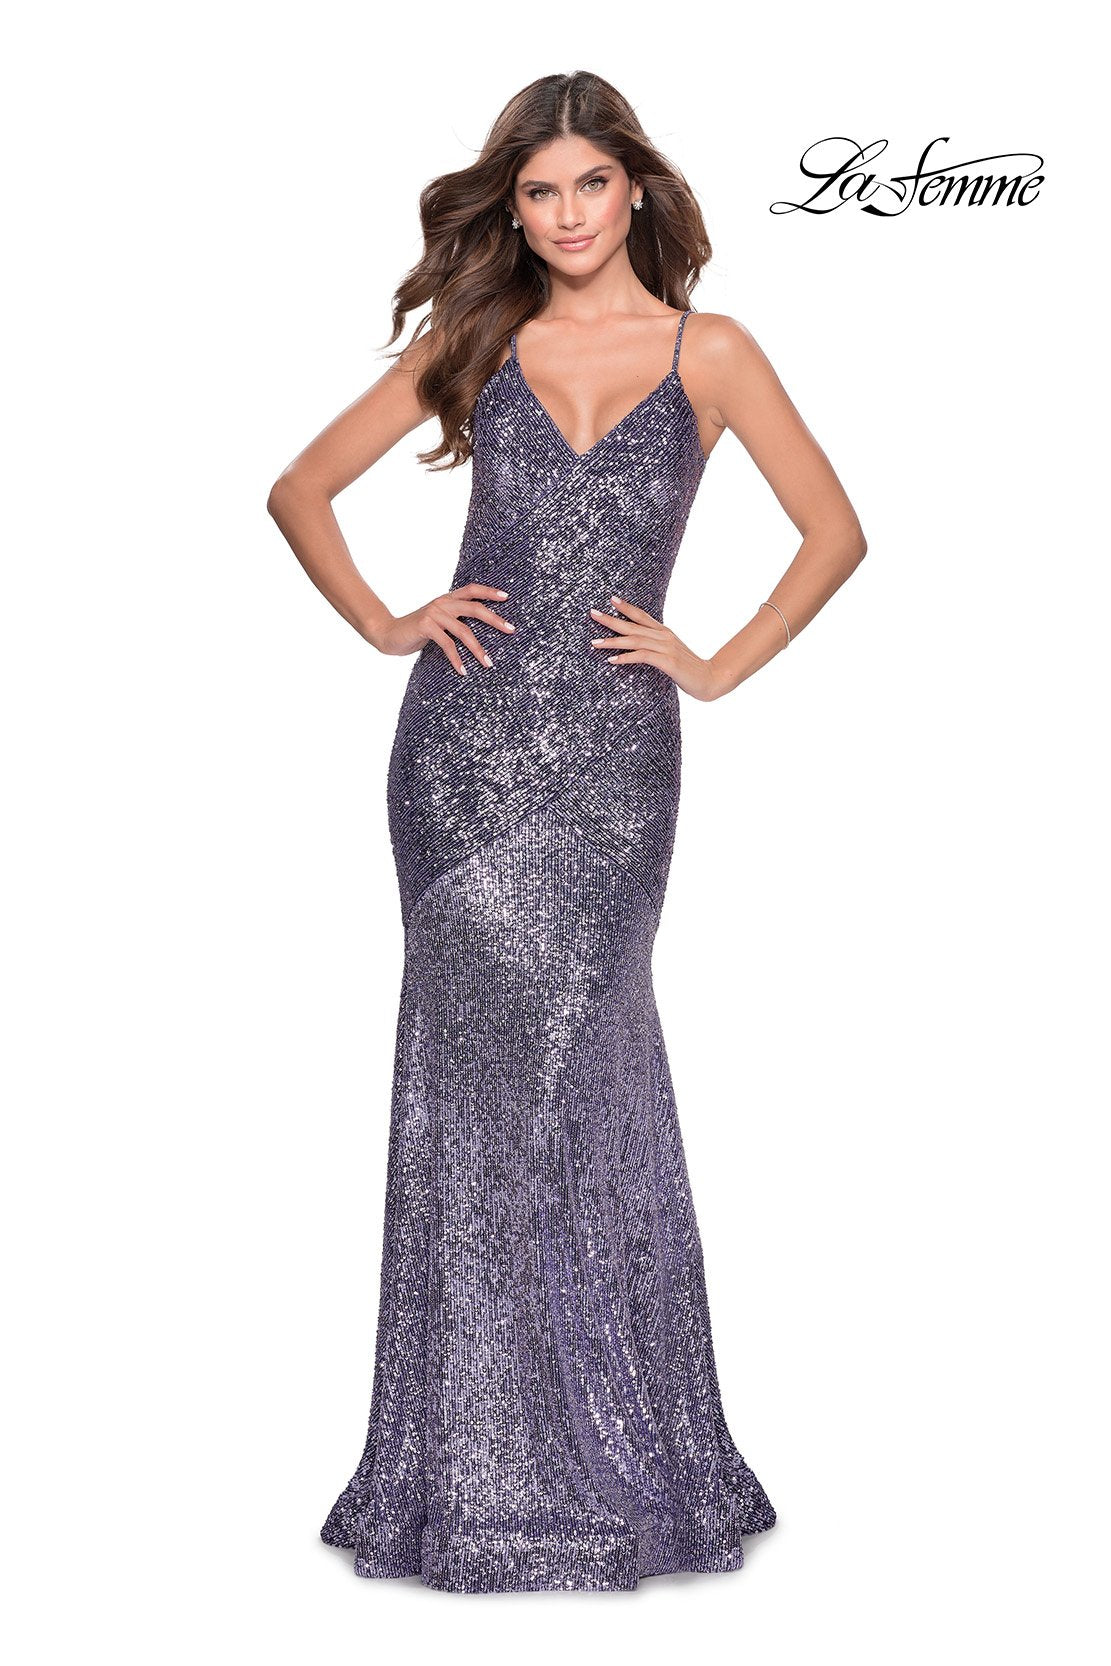 La Femme 28713 prom dress images.  La Femme 28713 is available in these colors: Lavender, Silver.